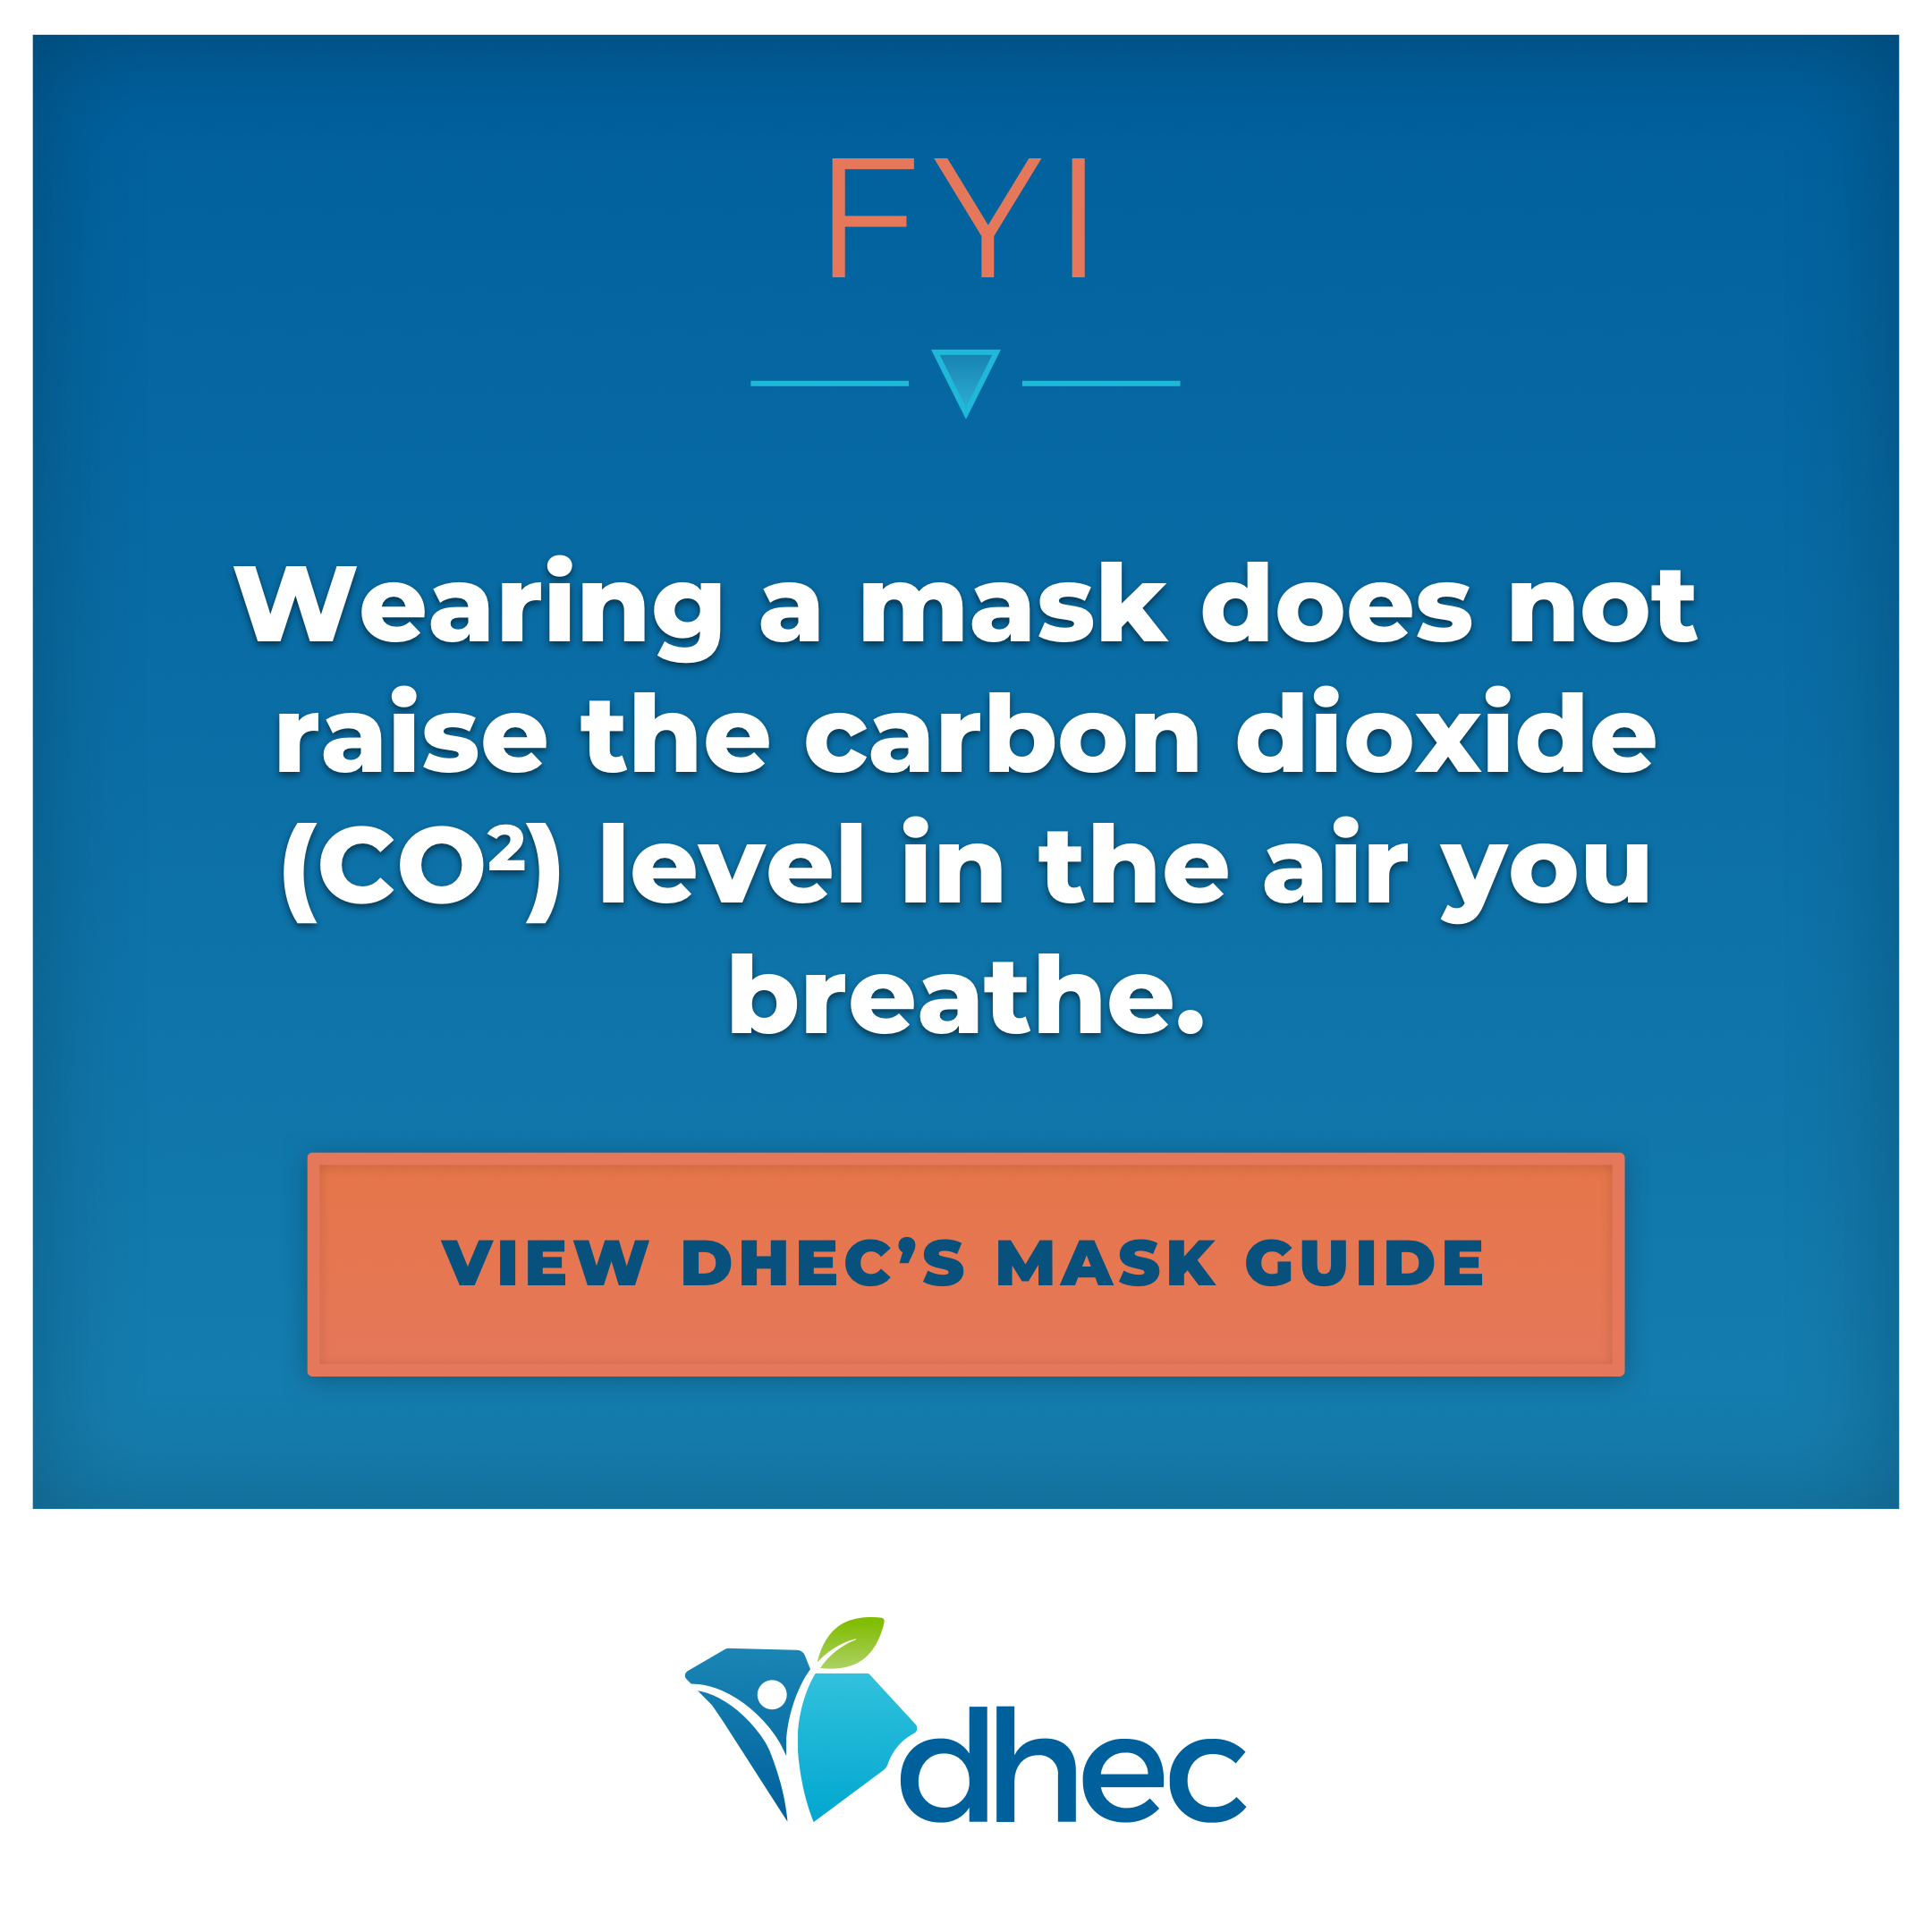 Wearing a mask does not increase the level of CO2 you breathe.